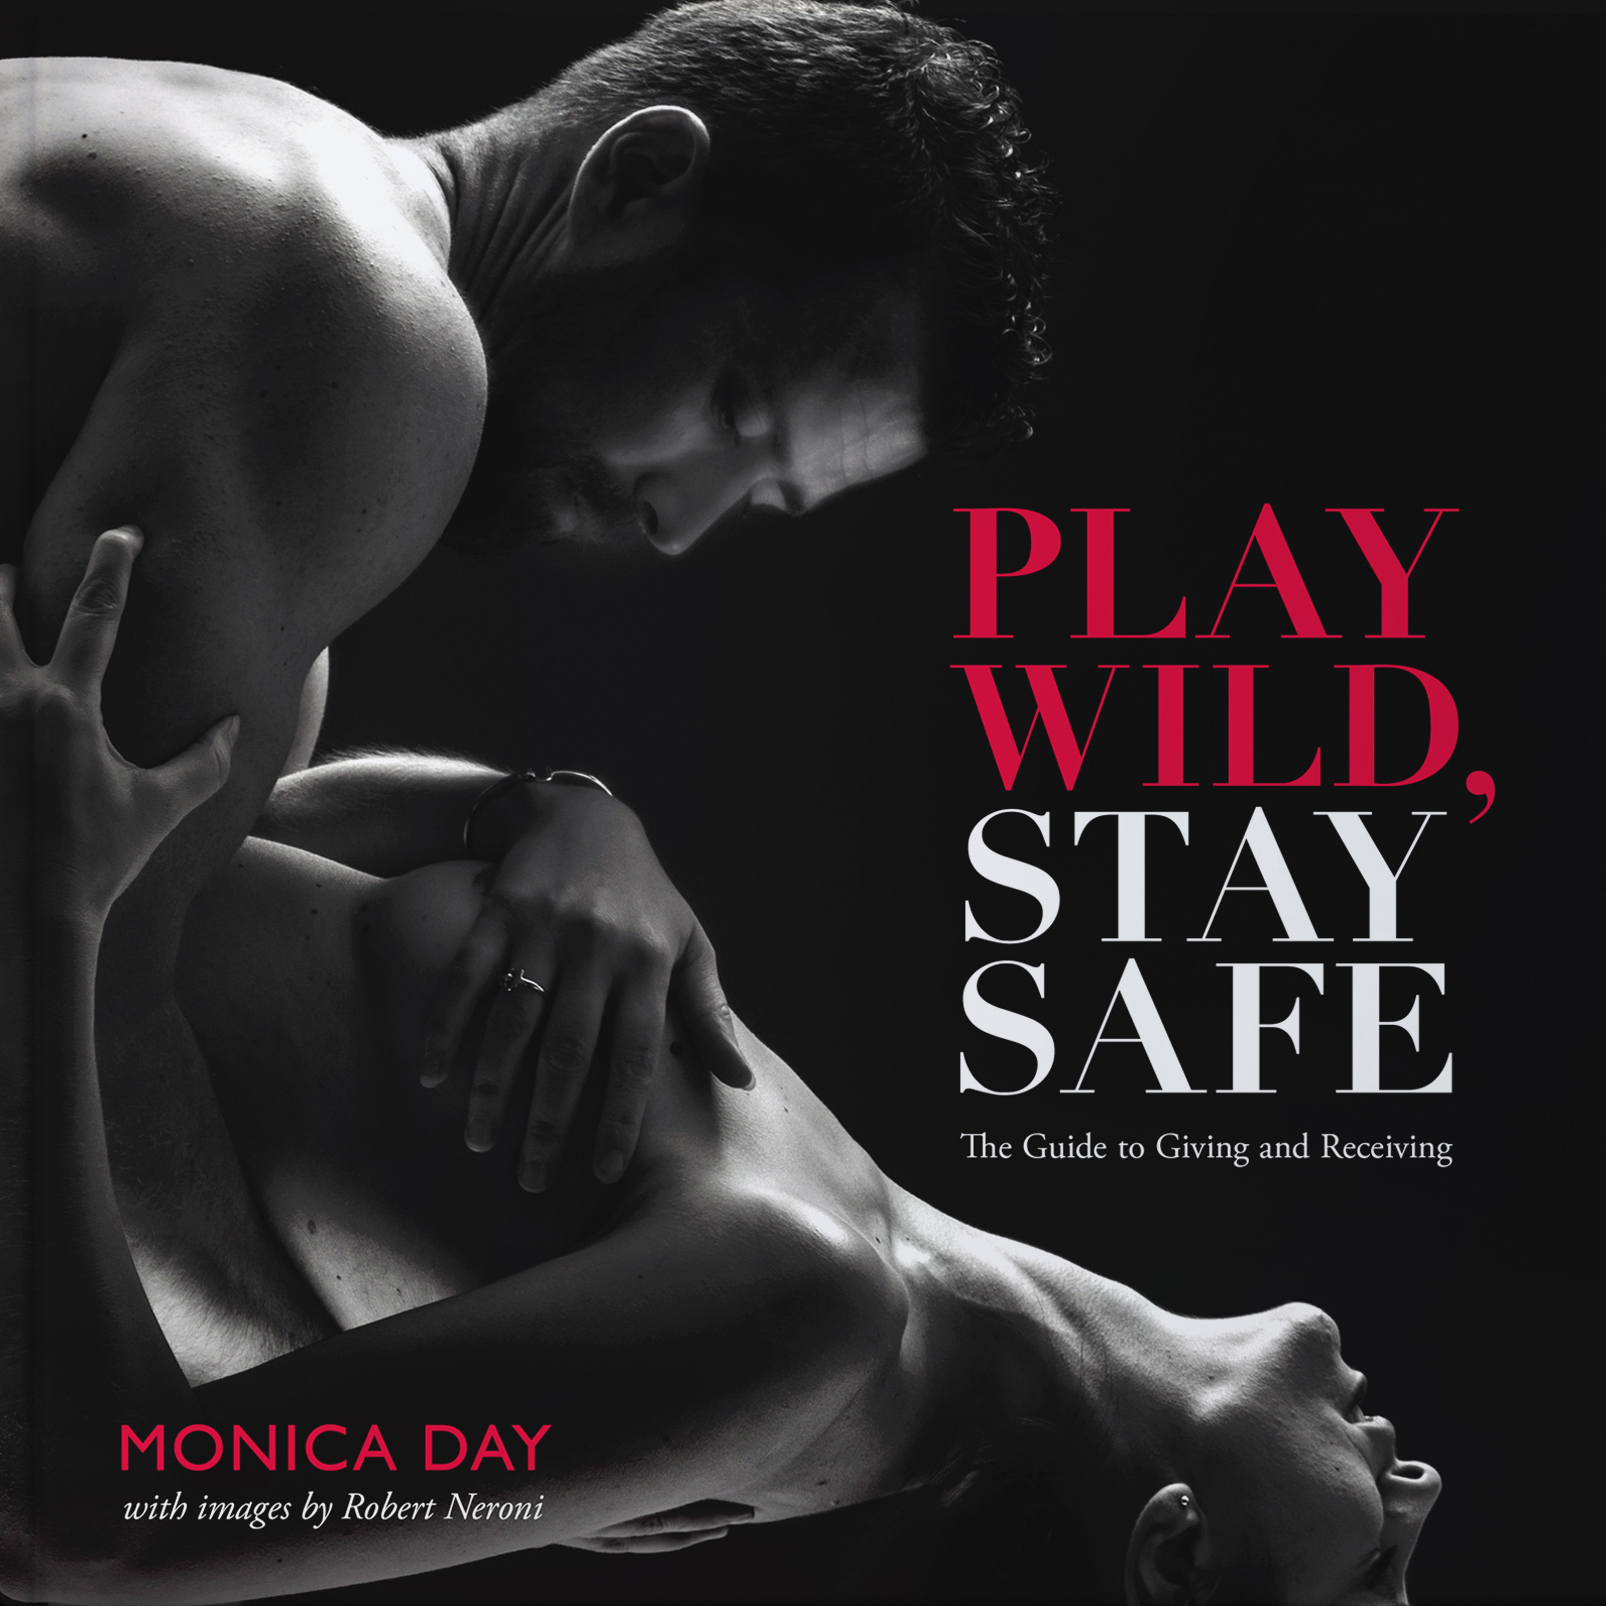 play wild, stay safe